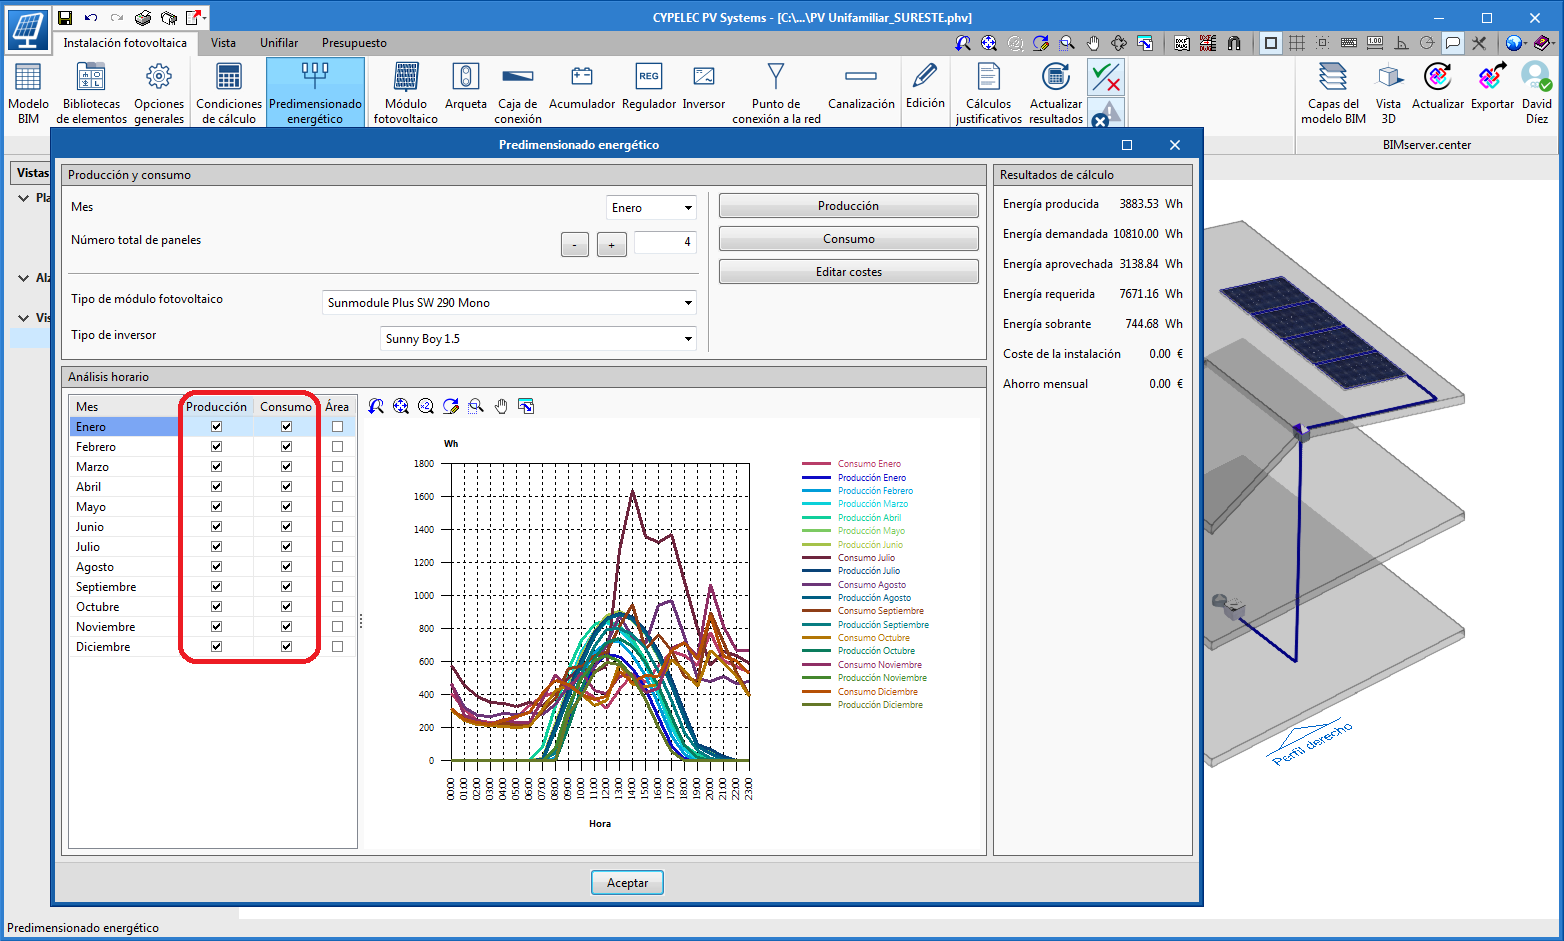 CYPELEC PV Systems. View consumption and generation graphs